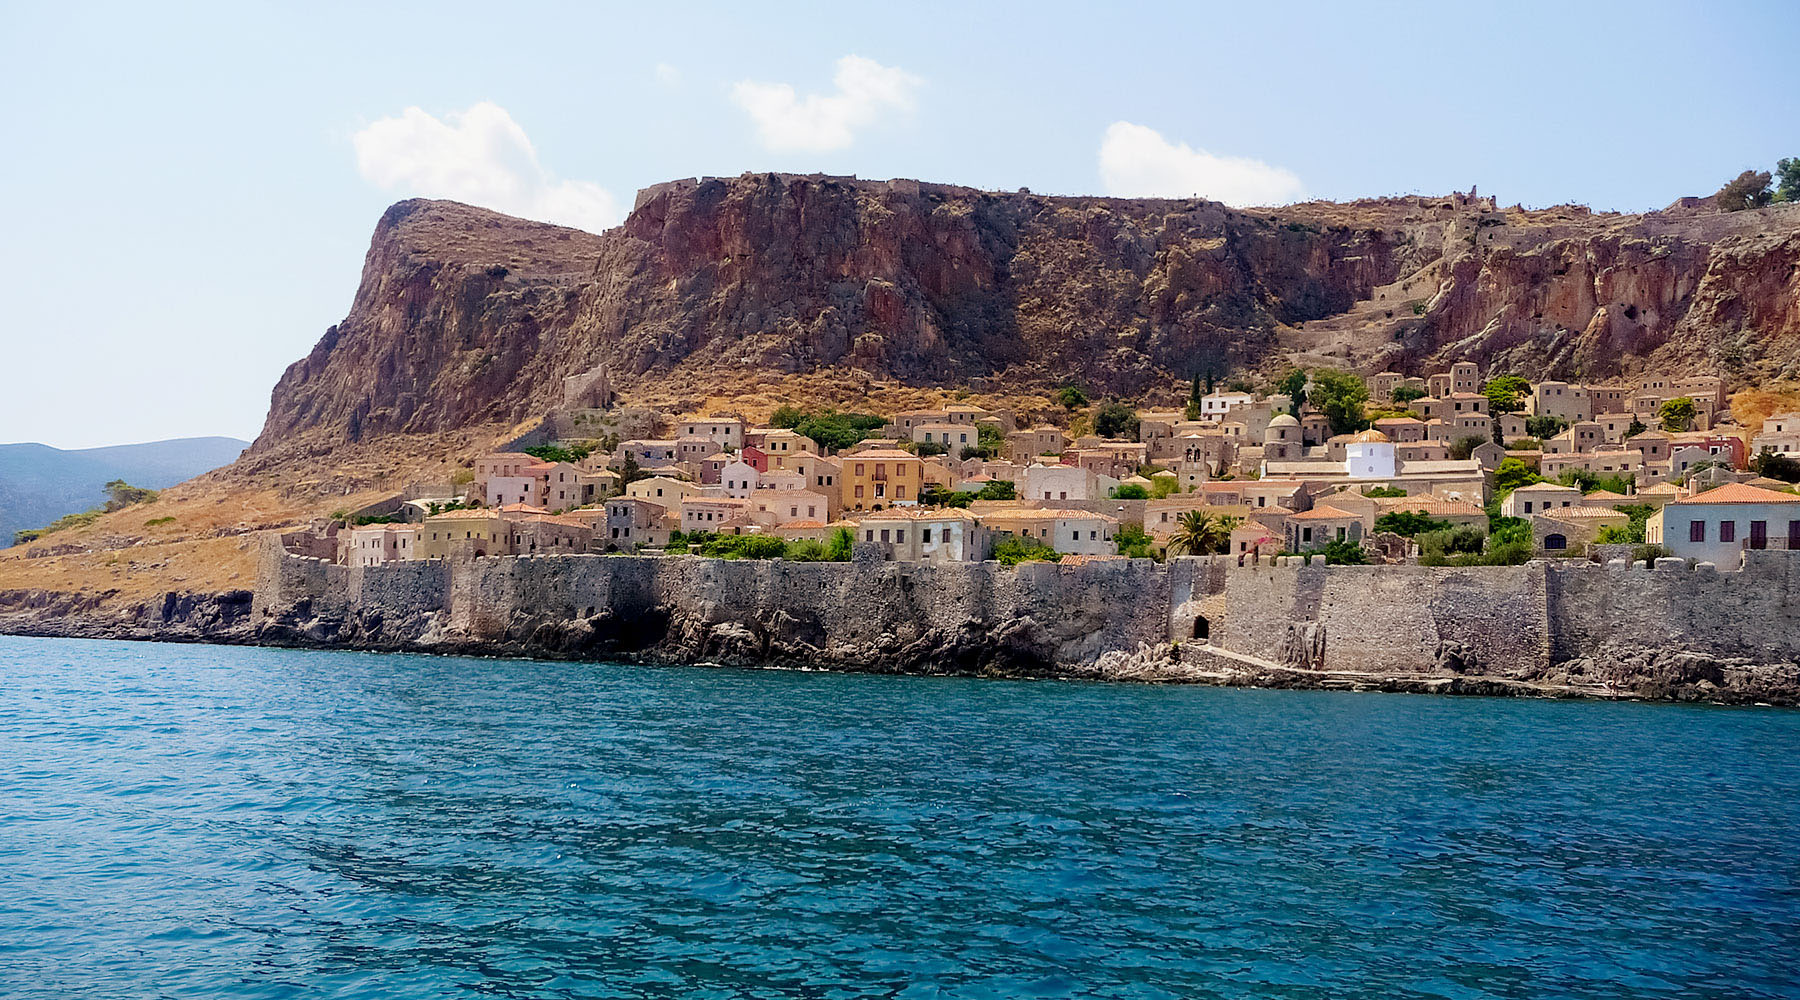 Luxury voyages to Monemvasia, Greece